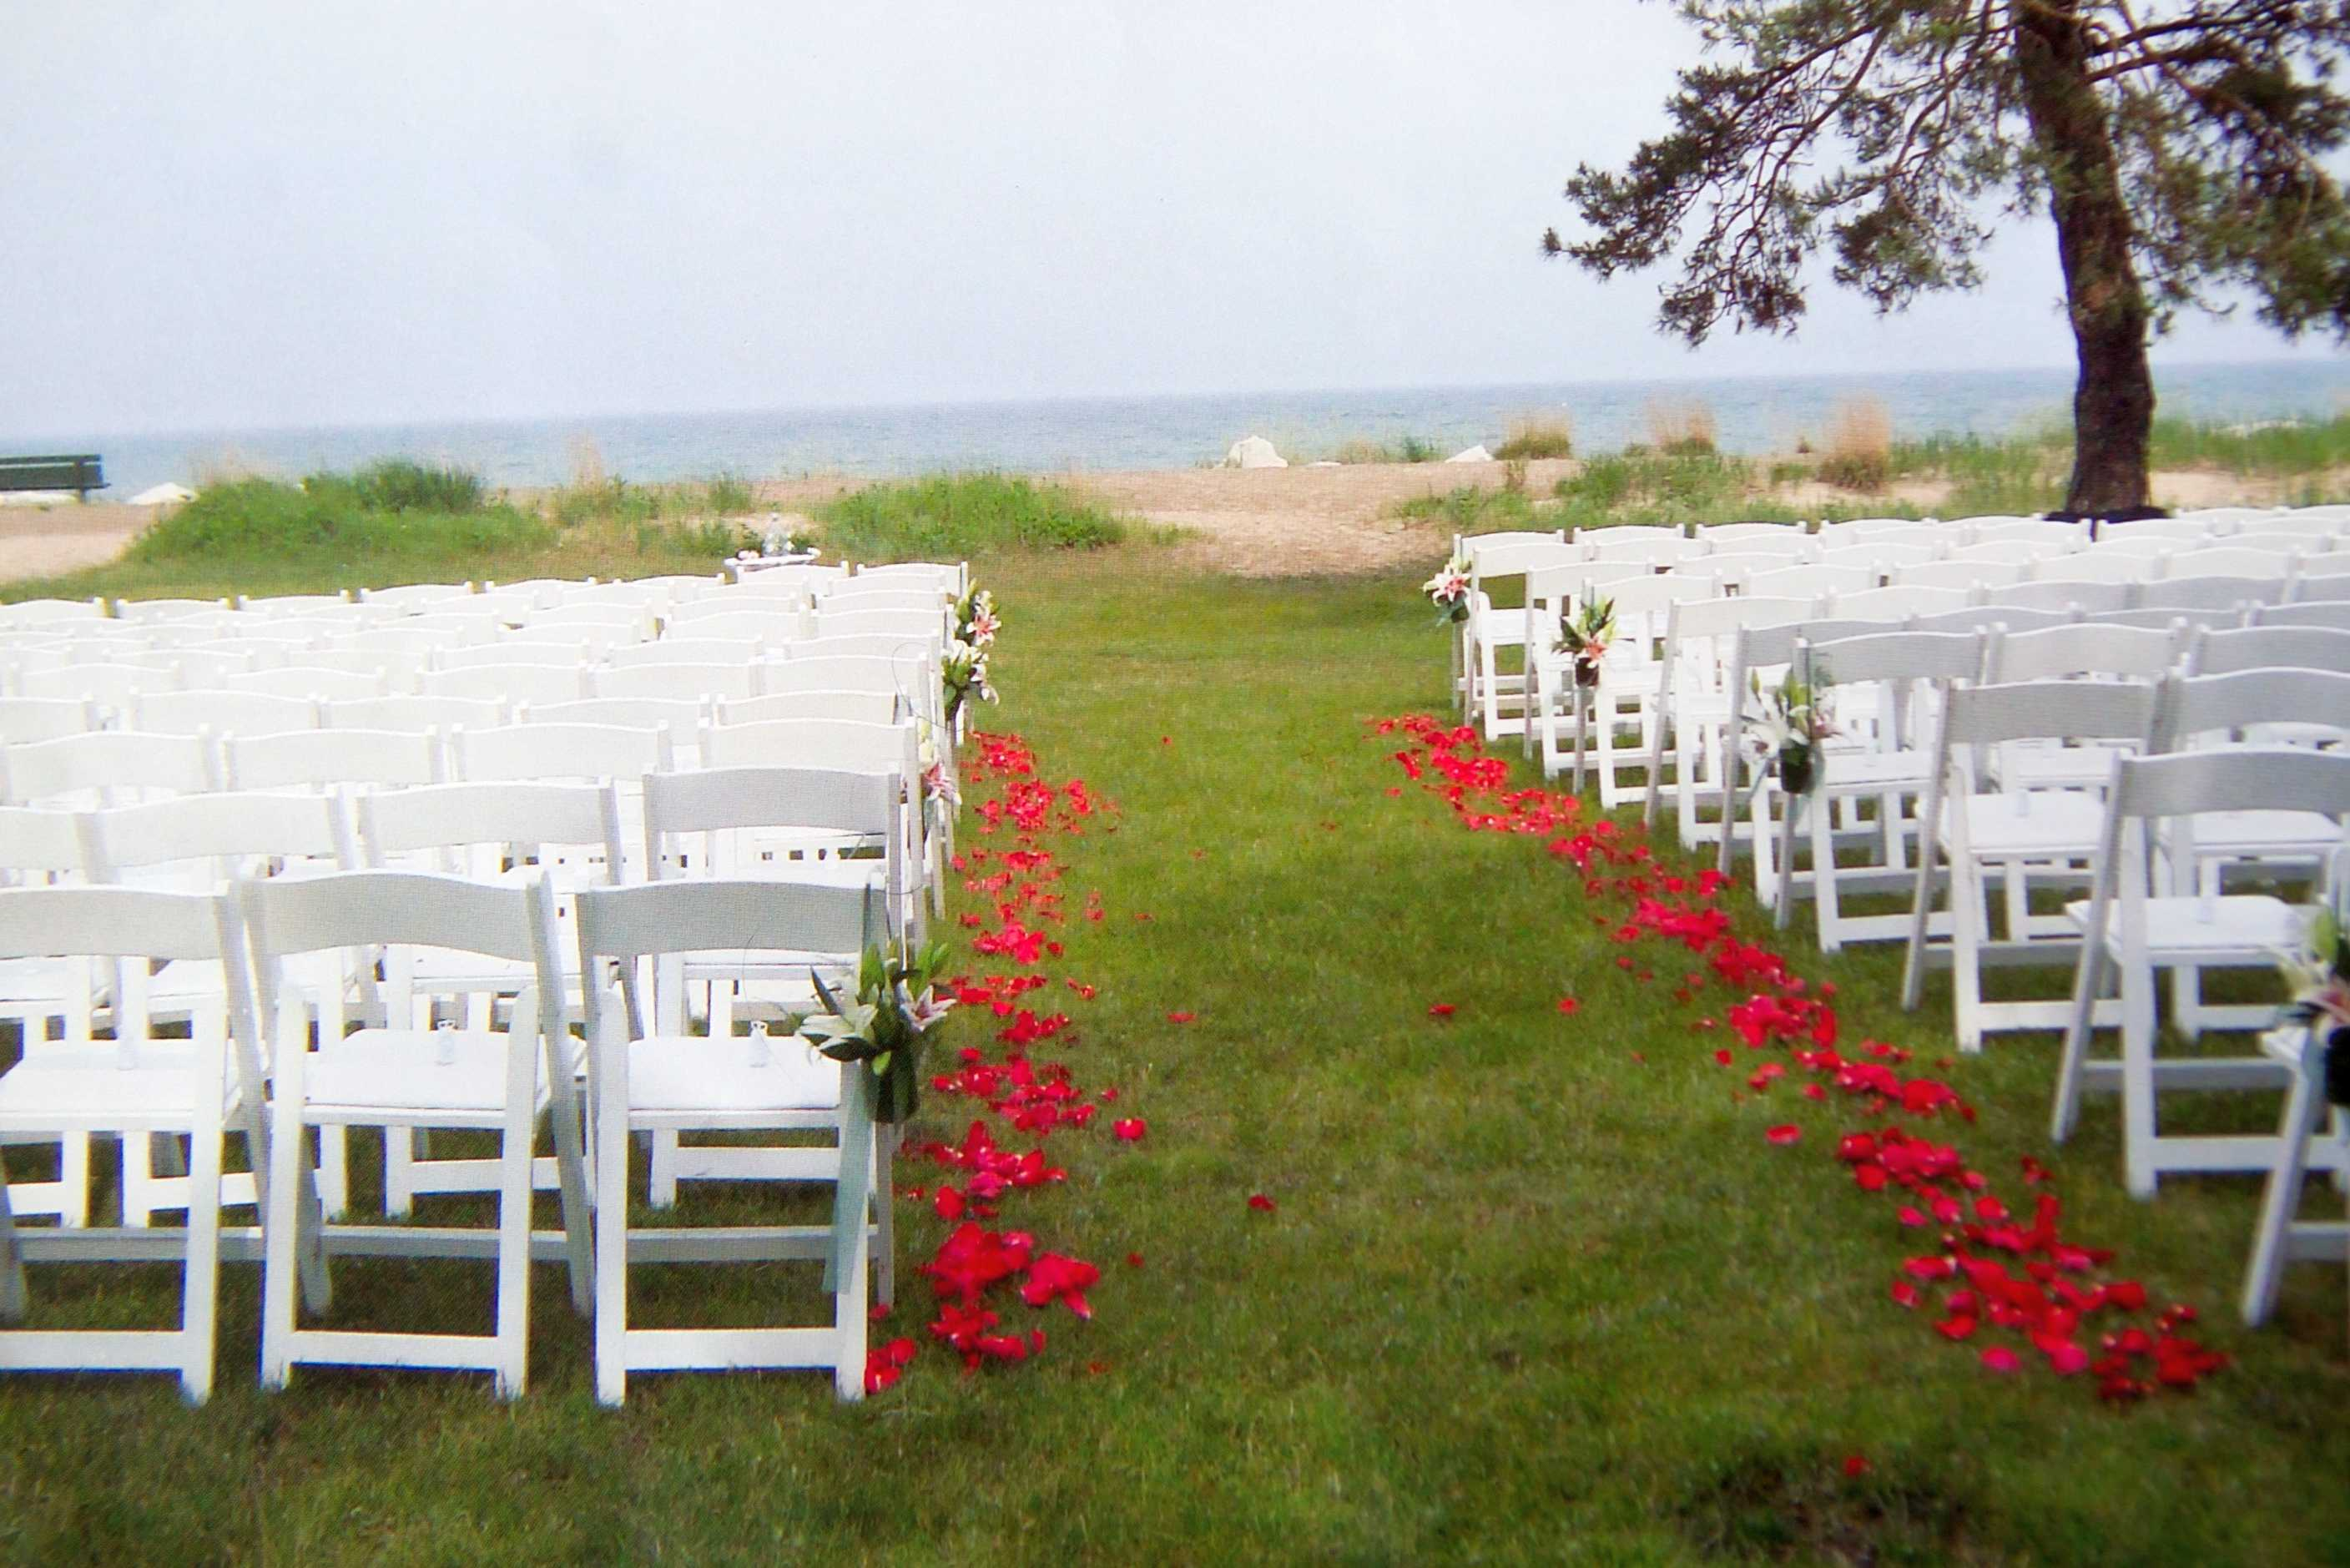 Weddings at the Illinois Beach Hotel